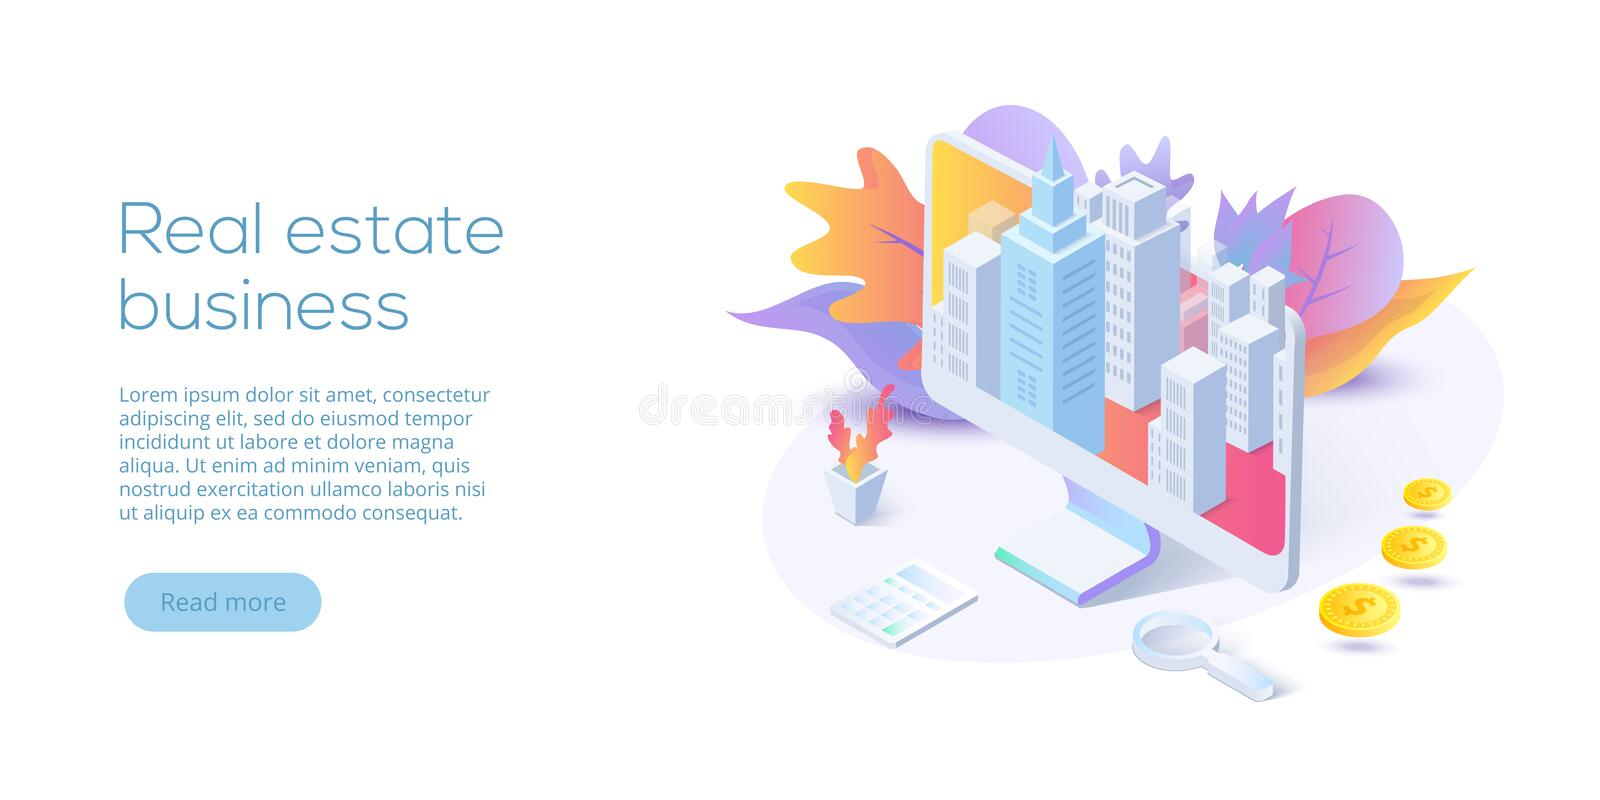 Real estate business isometric vector illustration. House search. Ing app concept. Online buying, renting, selling property website layout stock illustration